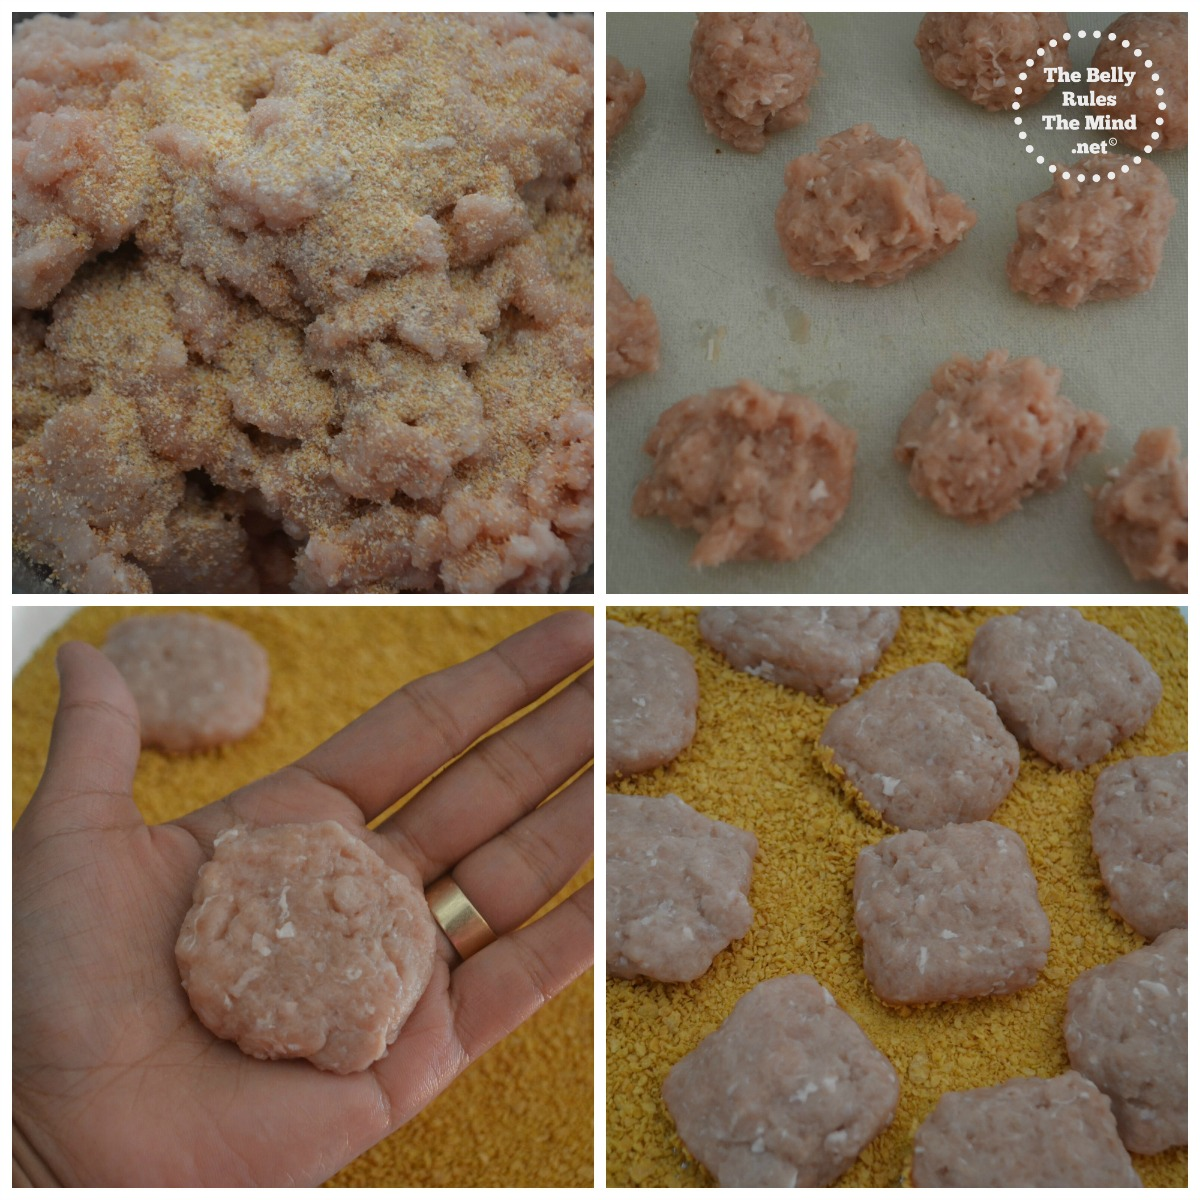 Home-made chicken nuggets